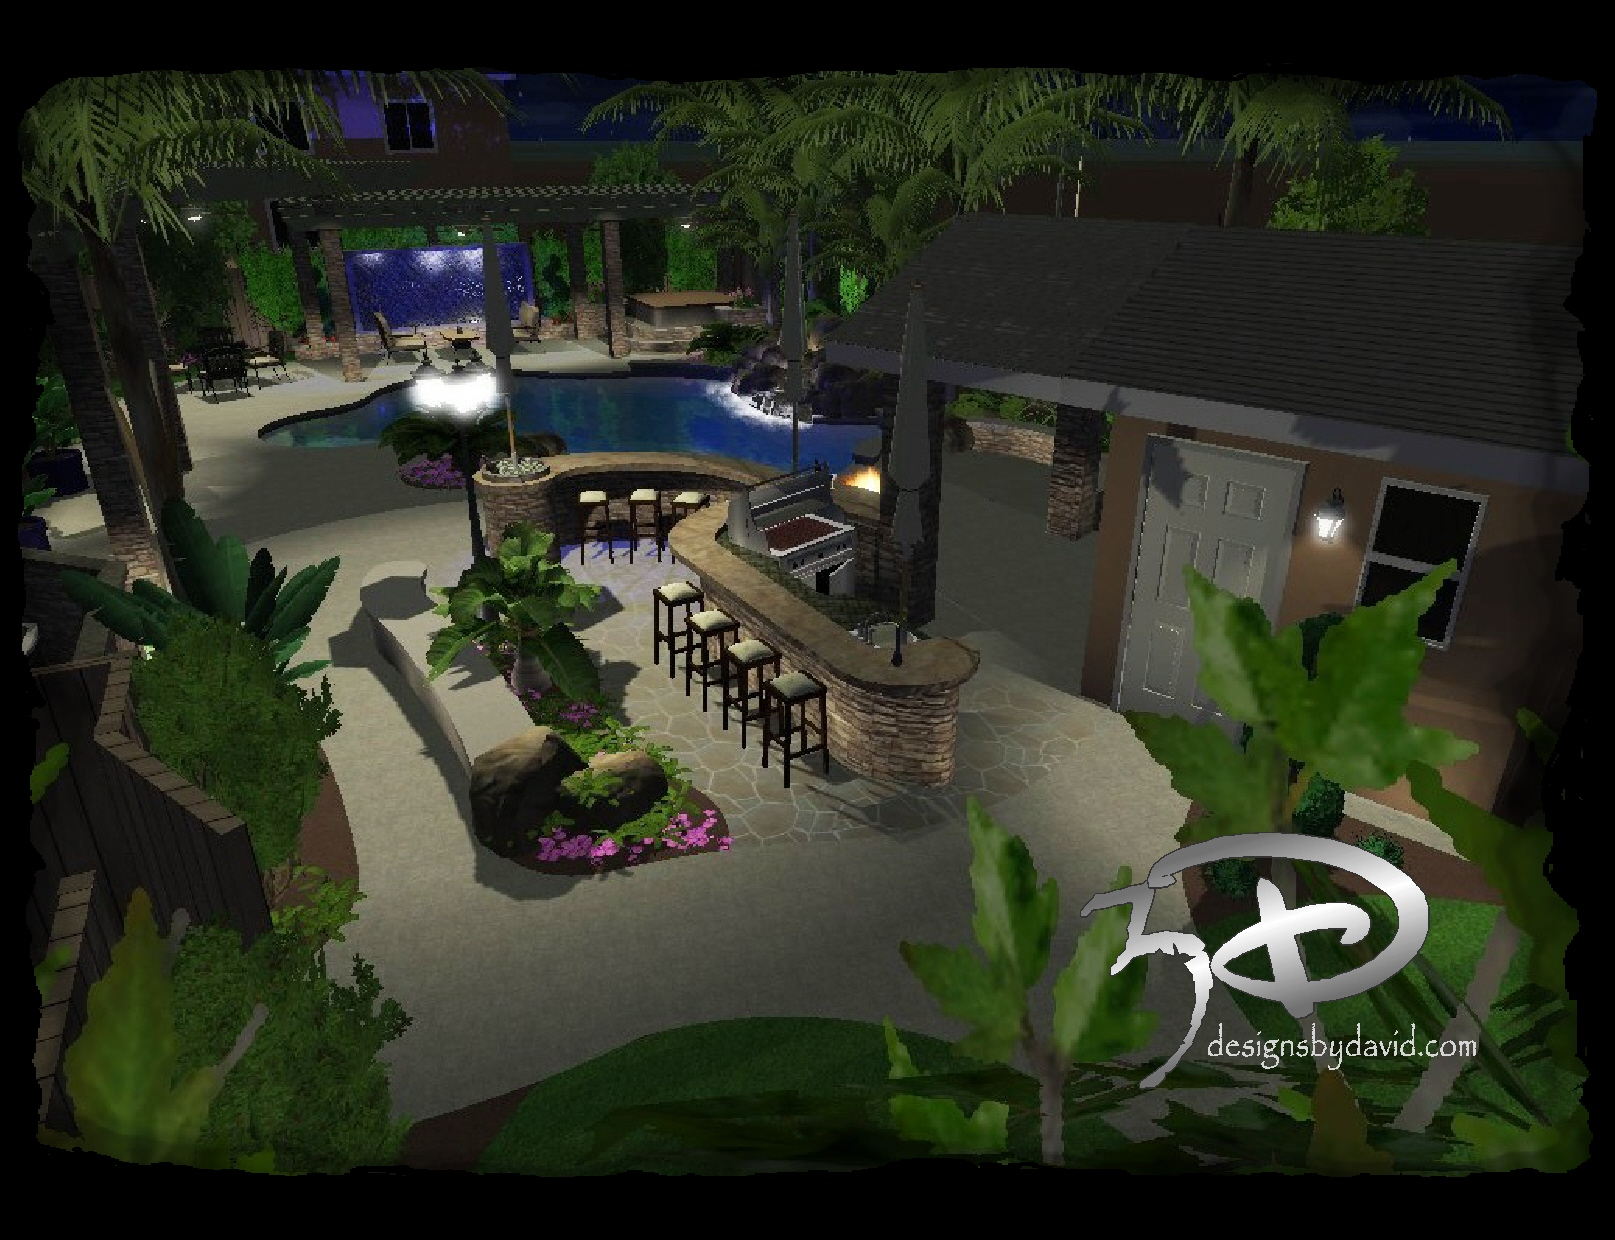 Cabanas  Outdoor Kitchens D Designs By David -  select outdoor kitchens